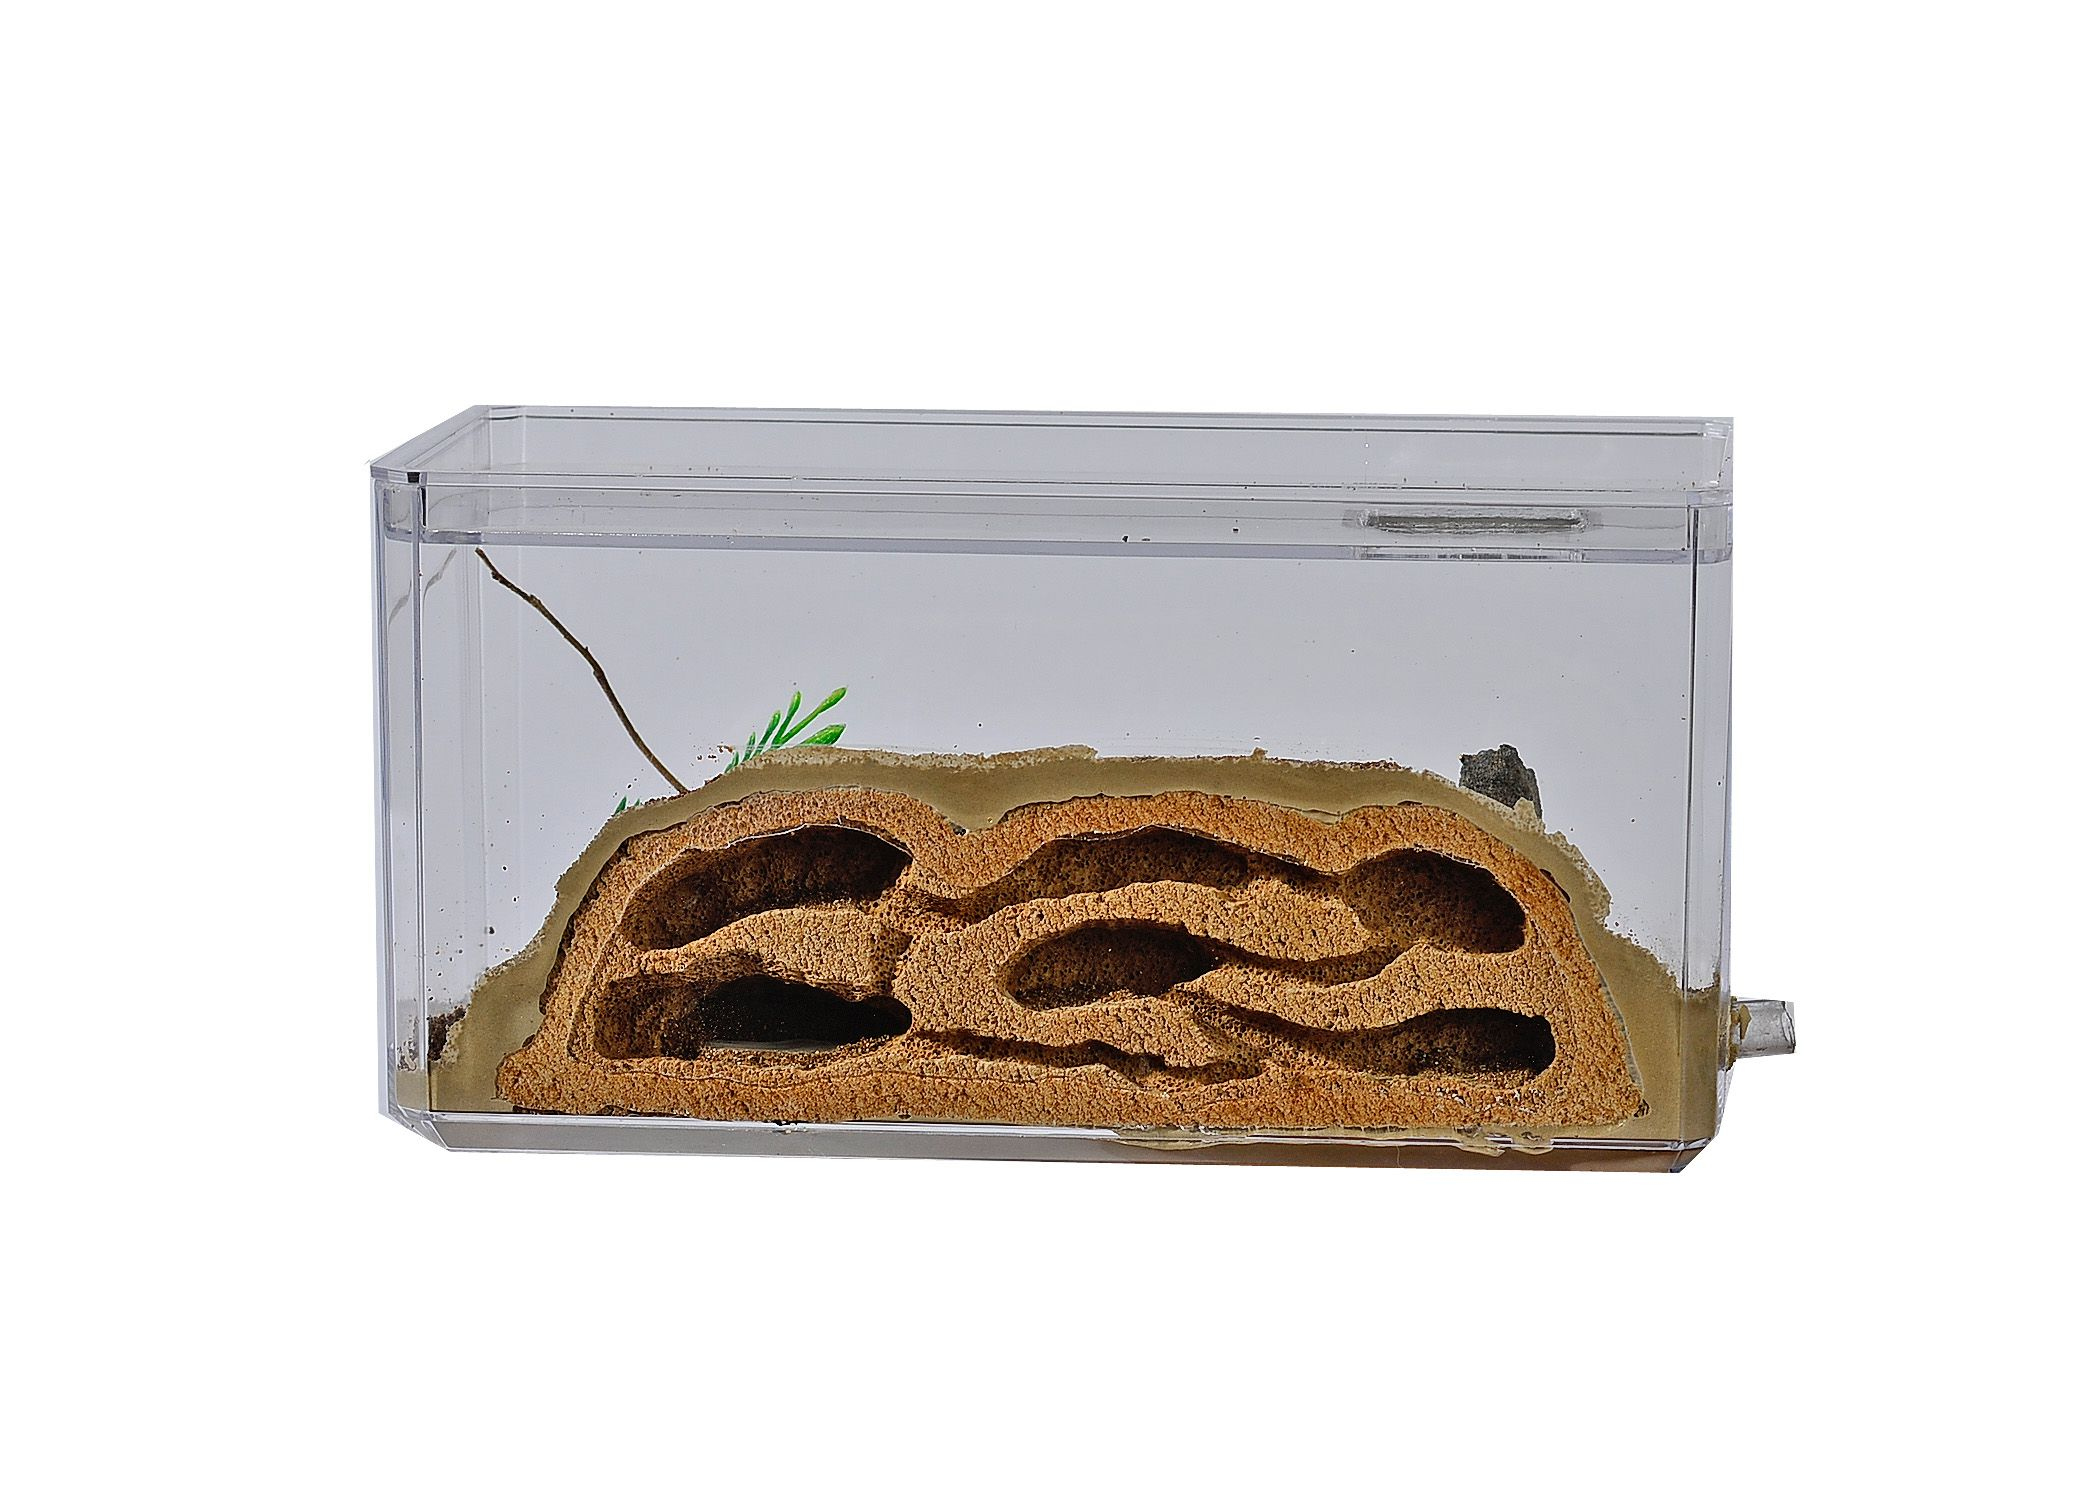 Tarheelants Formicarium Bugs Pinterest # Faire Support Aquarium Beton Cellulaire